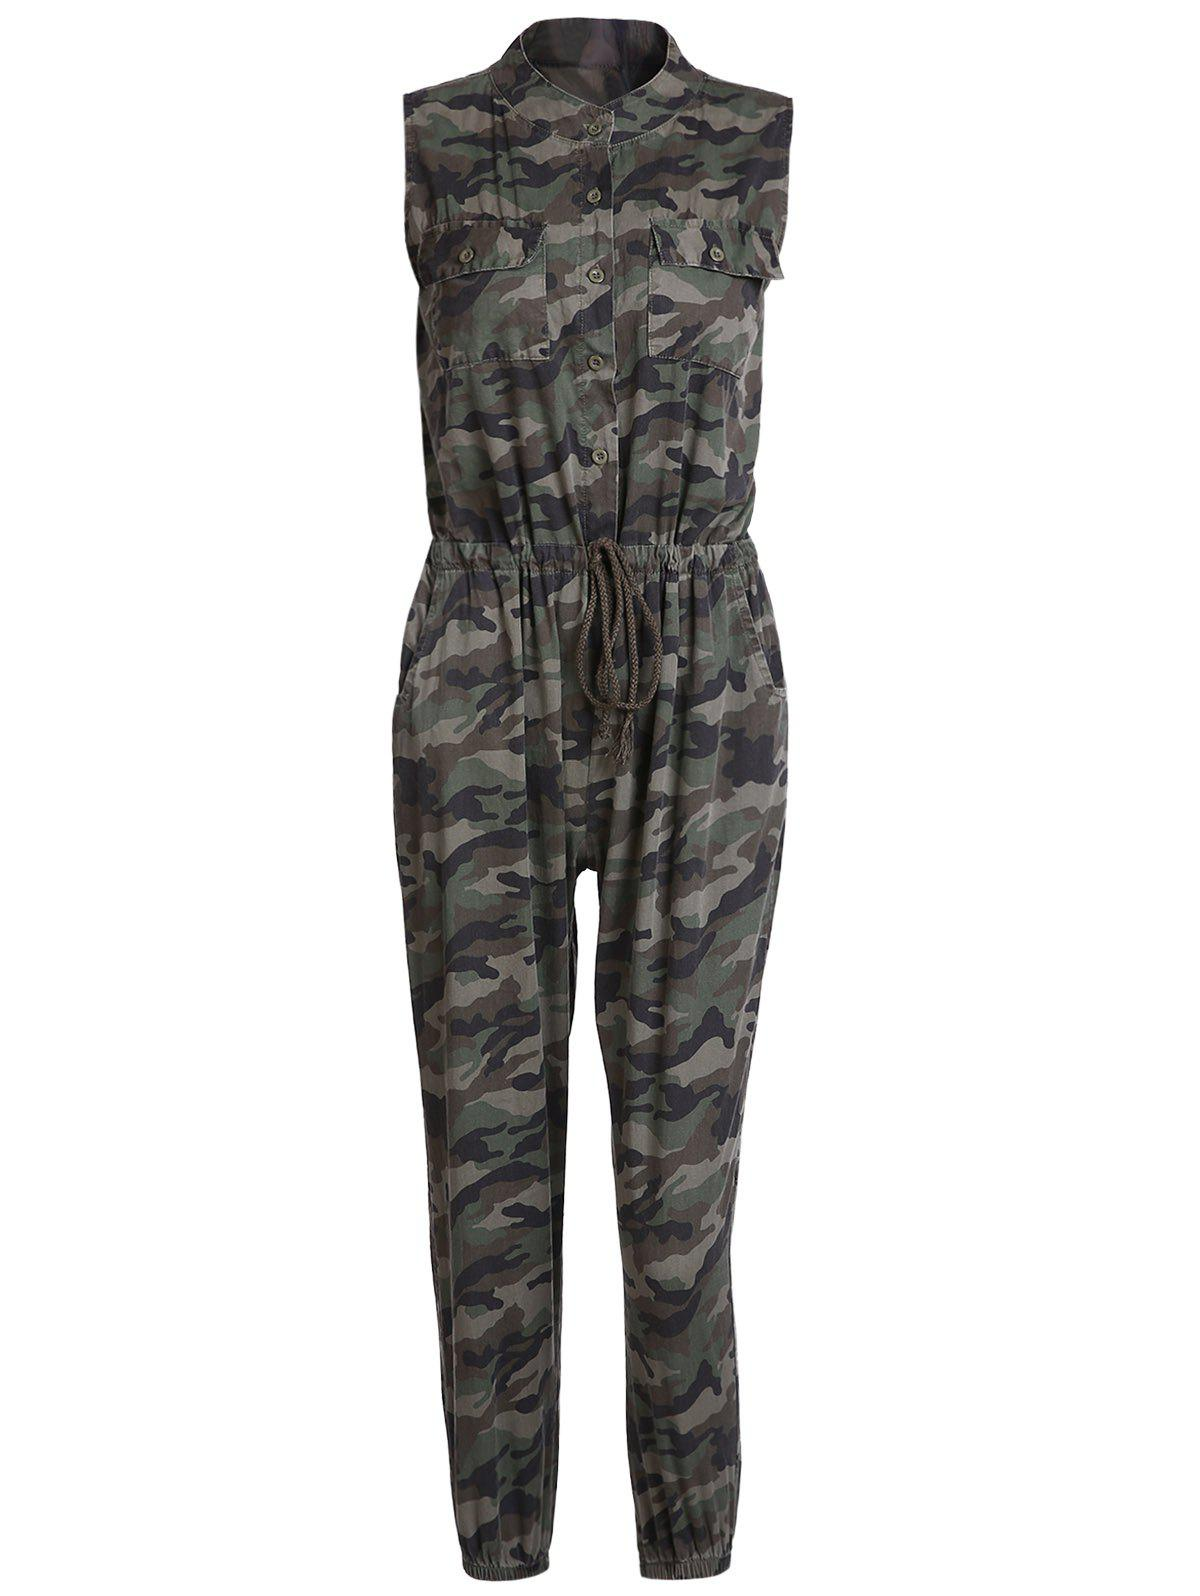 Chic Camouflage Printed V-Neck Sleeveless Waist Drawstring Jogger Jumpsuit For Women - COLORMIX S